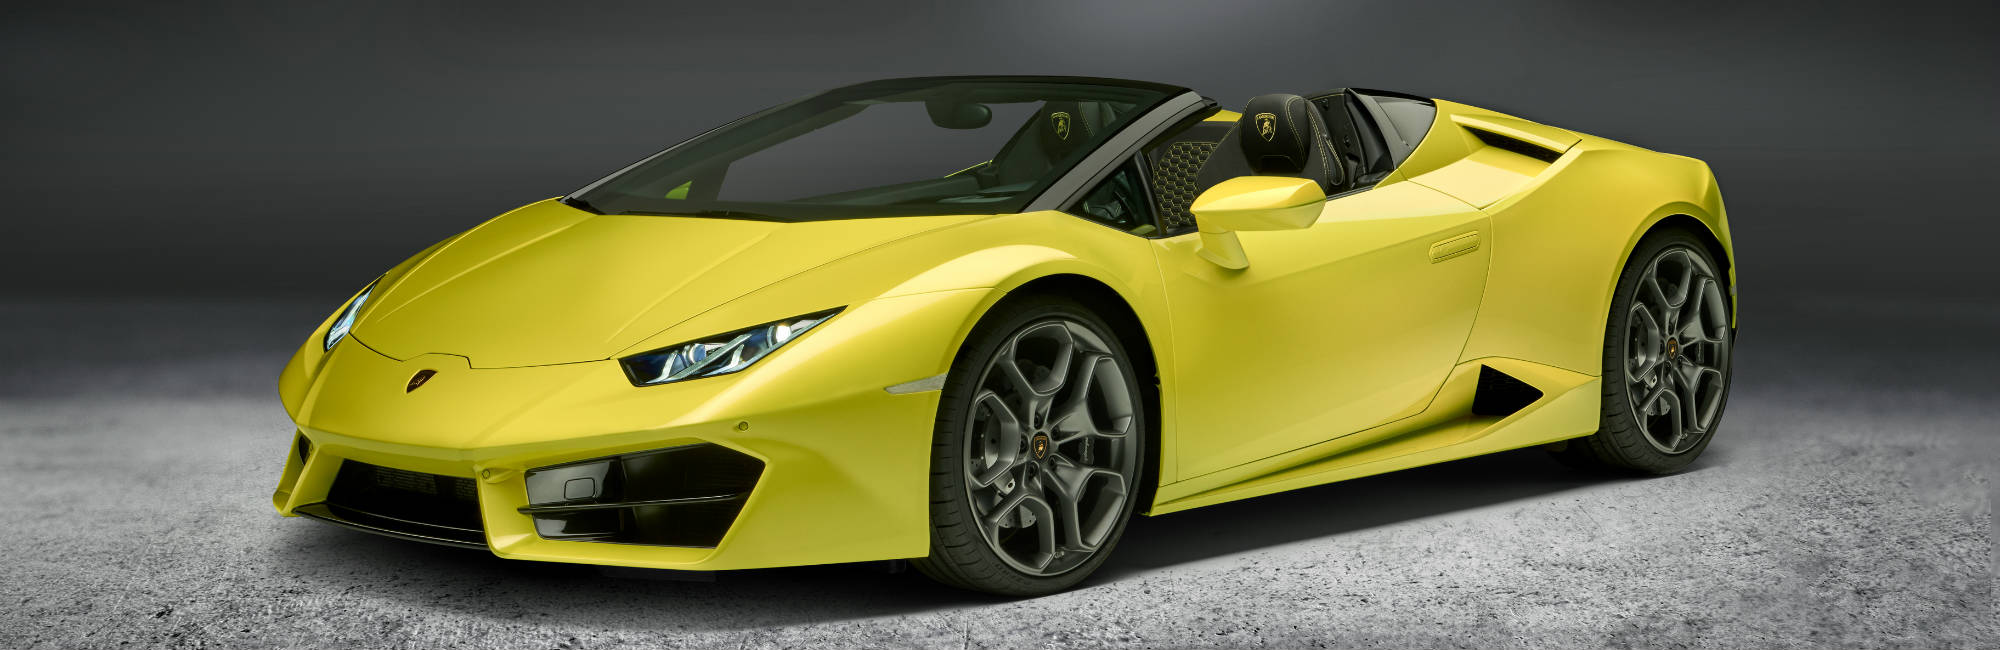 before that making when tips buy financing money watch you lamborghini for real start